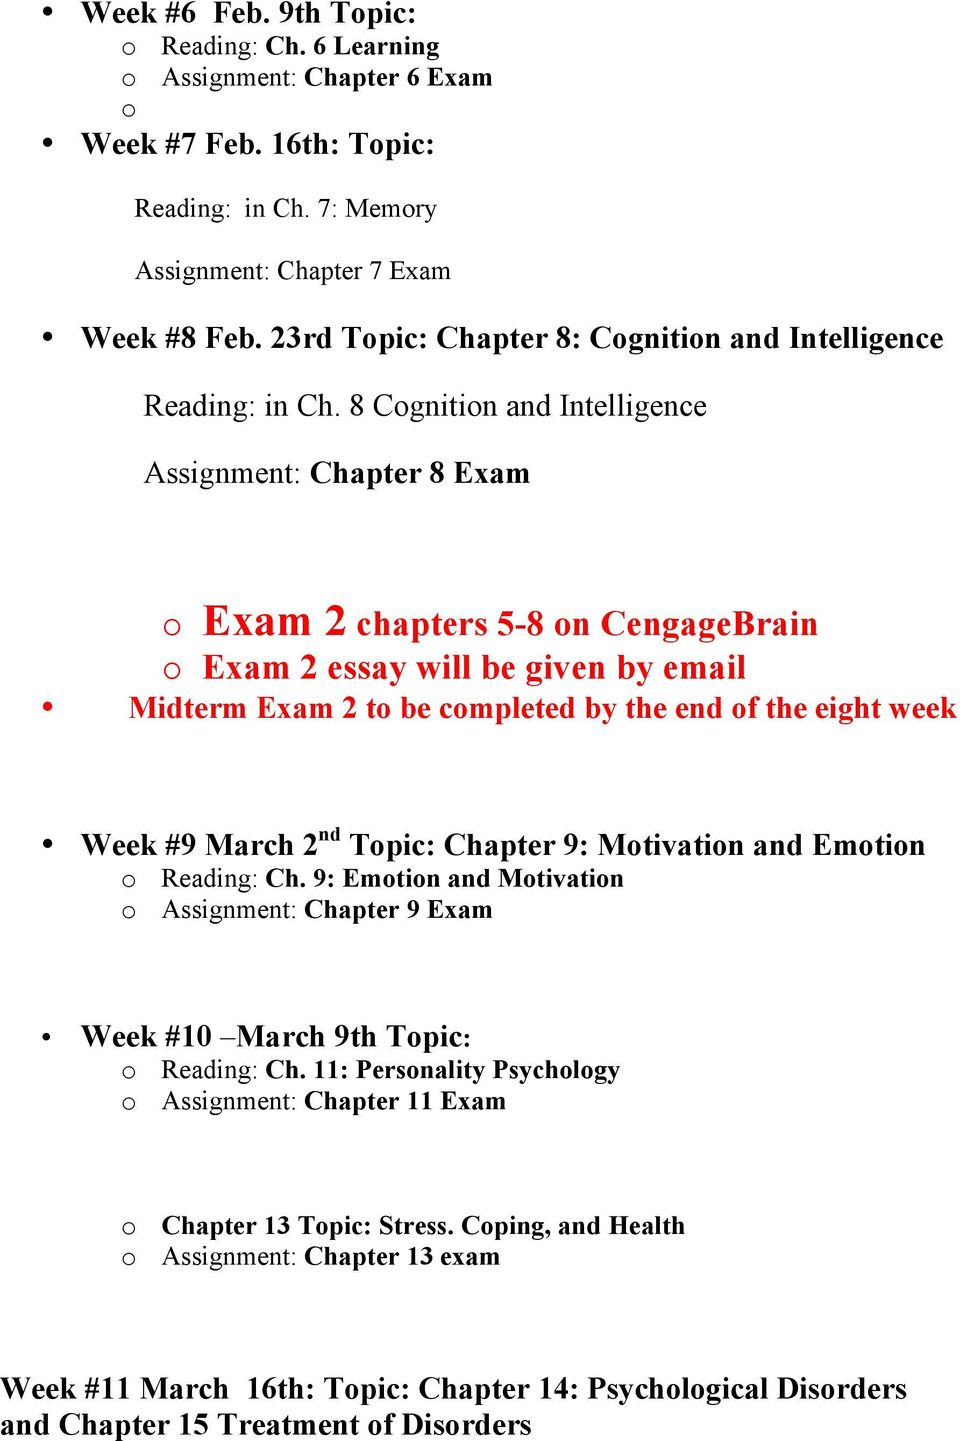 8 Cgnitin and Intelligence Assignment: Chapter 8 Exam Exam 2 chapters 5-8 n CengageBrain Exam 2 essay will be given by email Midterm Exam 2 t be cmpleted by the end f the eight week Week #9 March